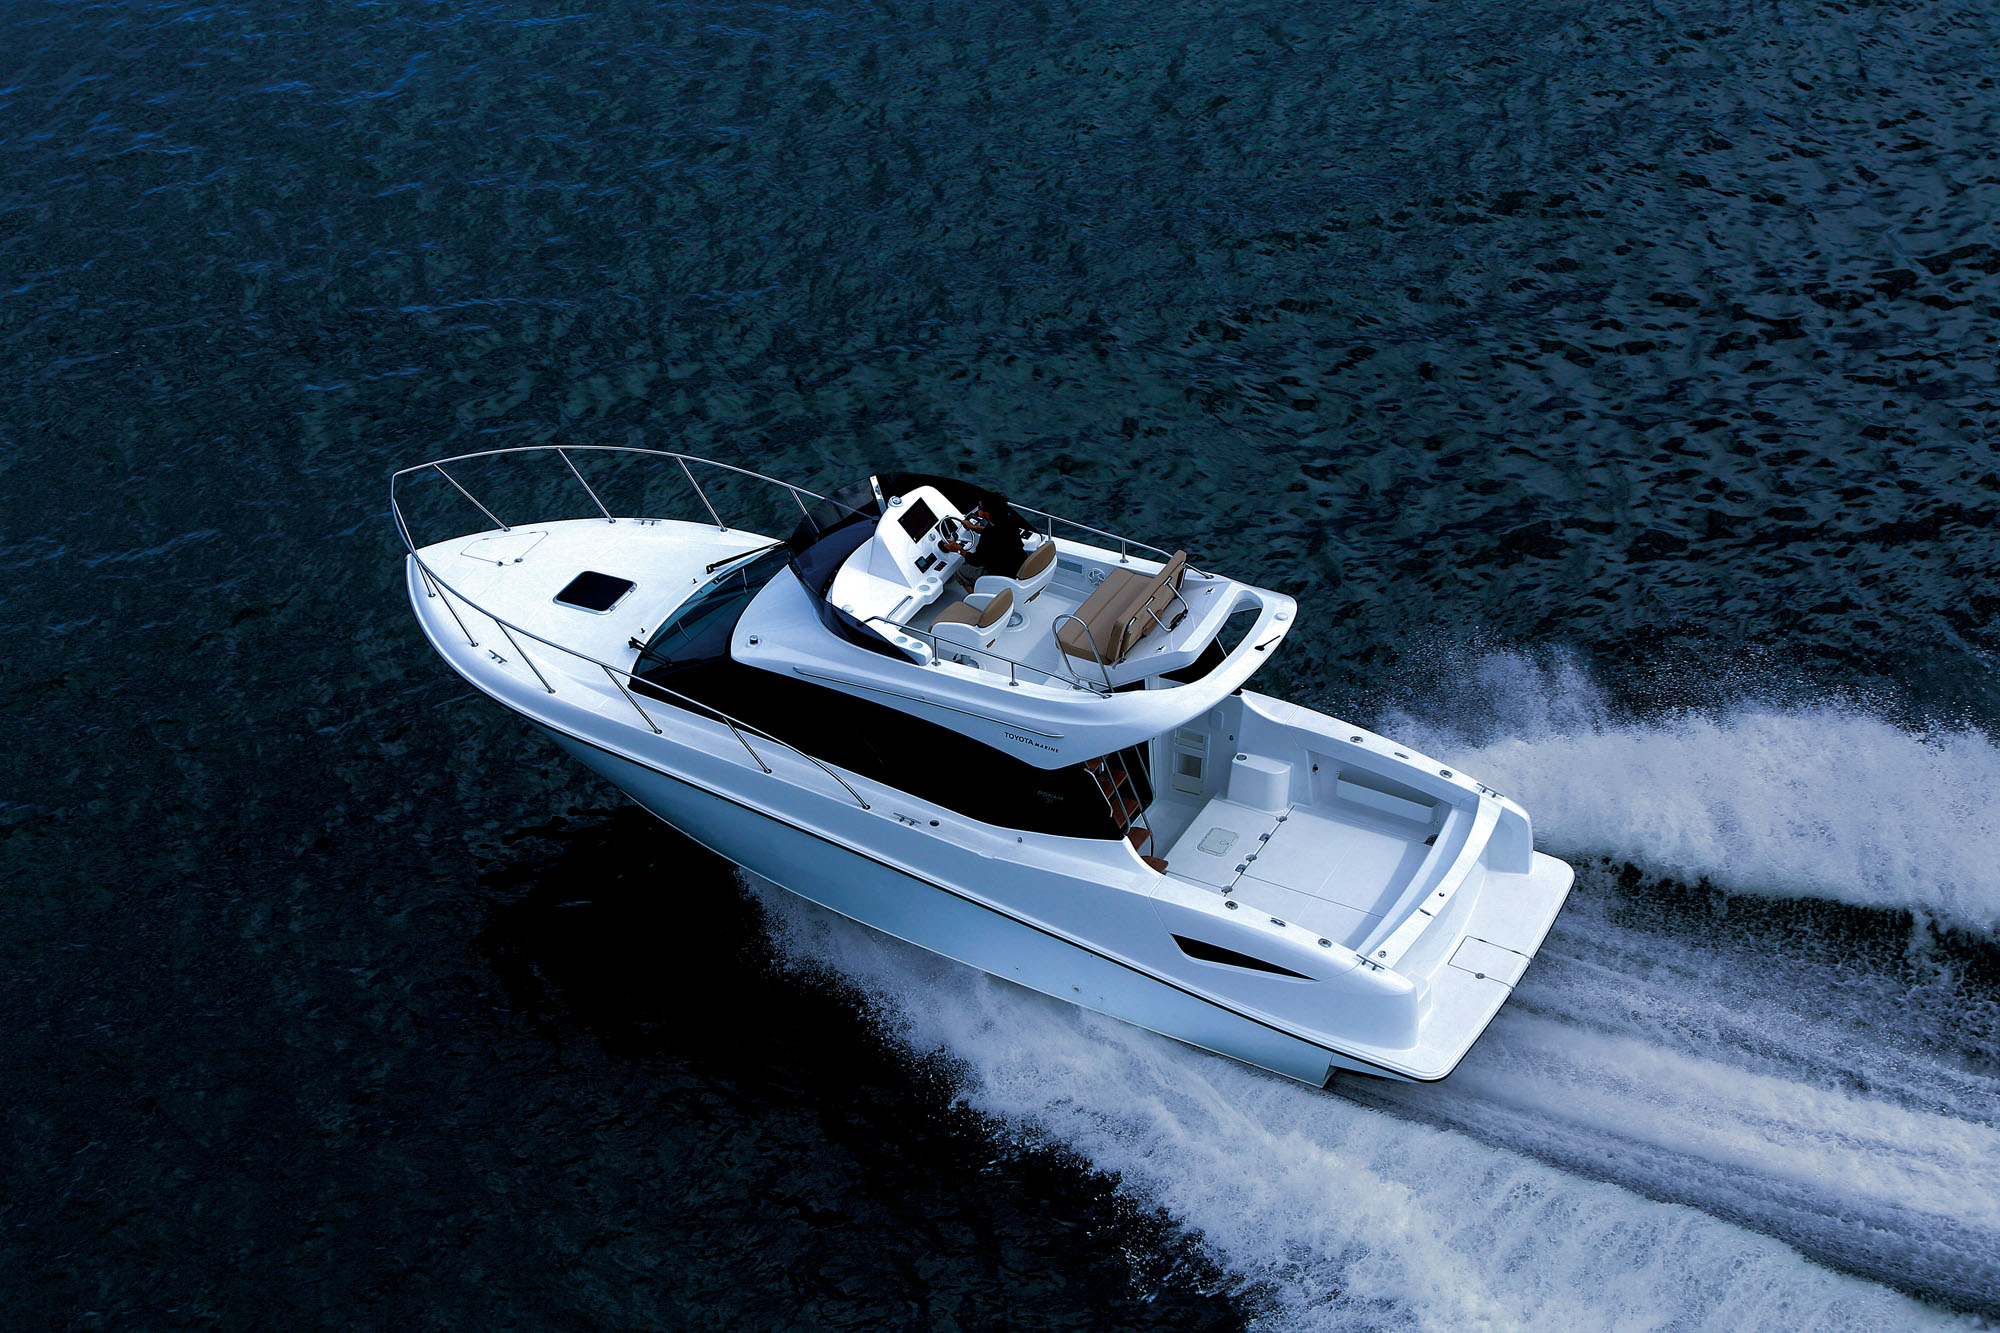 New Toyota Ponam-31 Sports Utility Cruiser Goes Where No Cars Have Gone Before